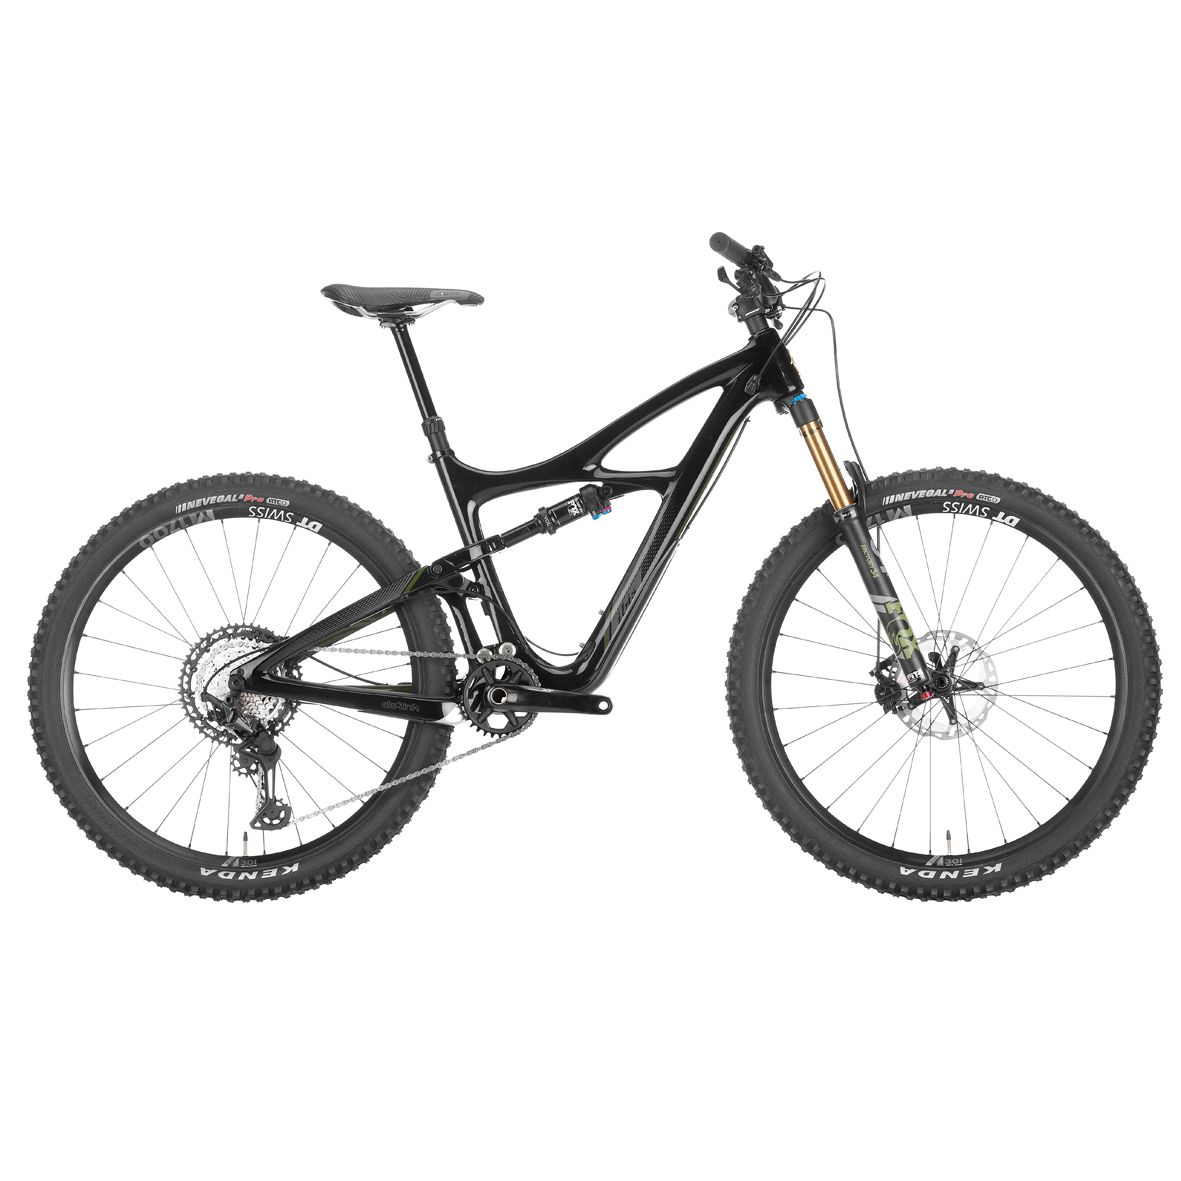 Black Friday Mountain Bike Deals The Best Deals On Hardtails Full Suspension And E Mtbs Bike Perfect